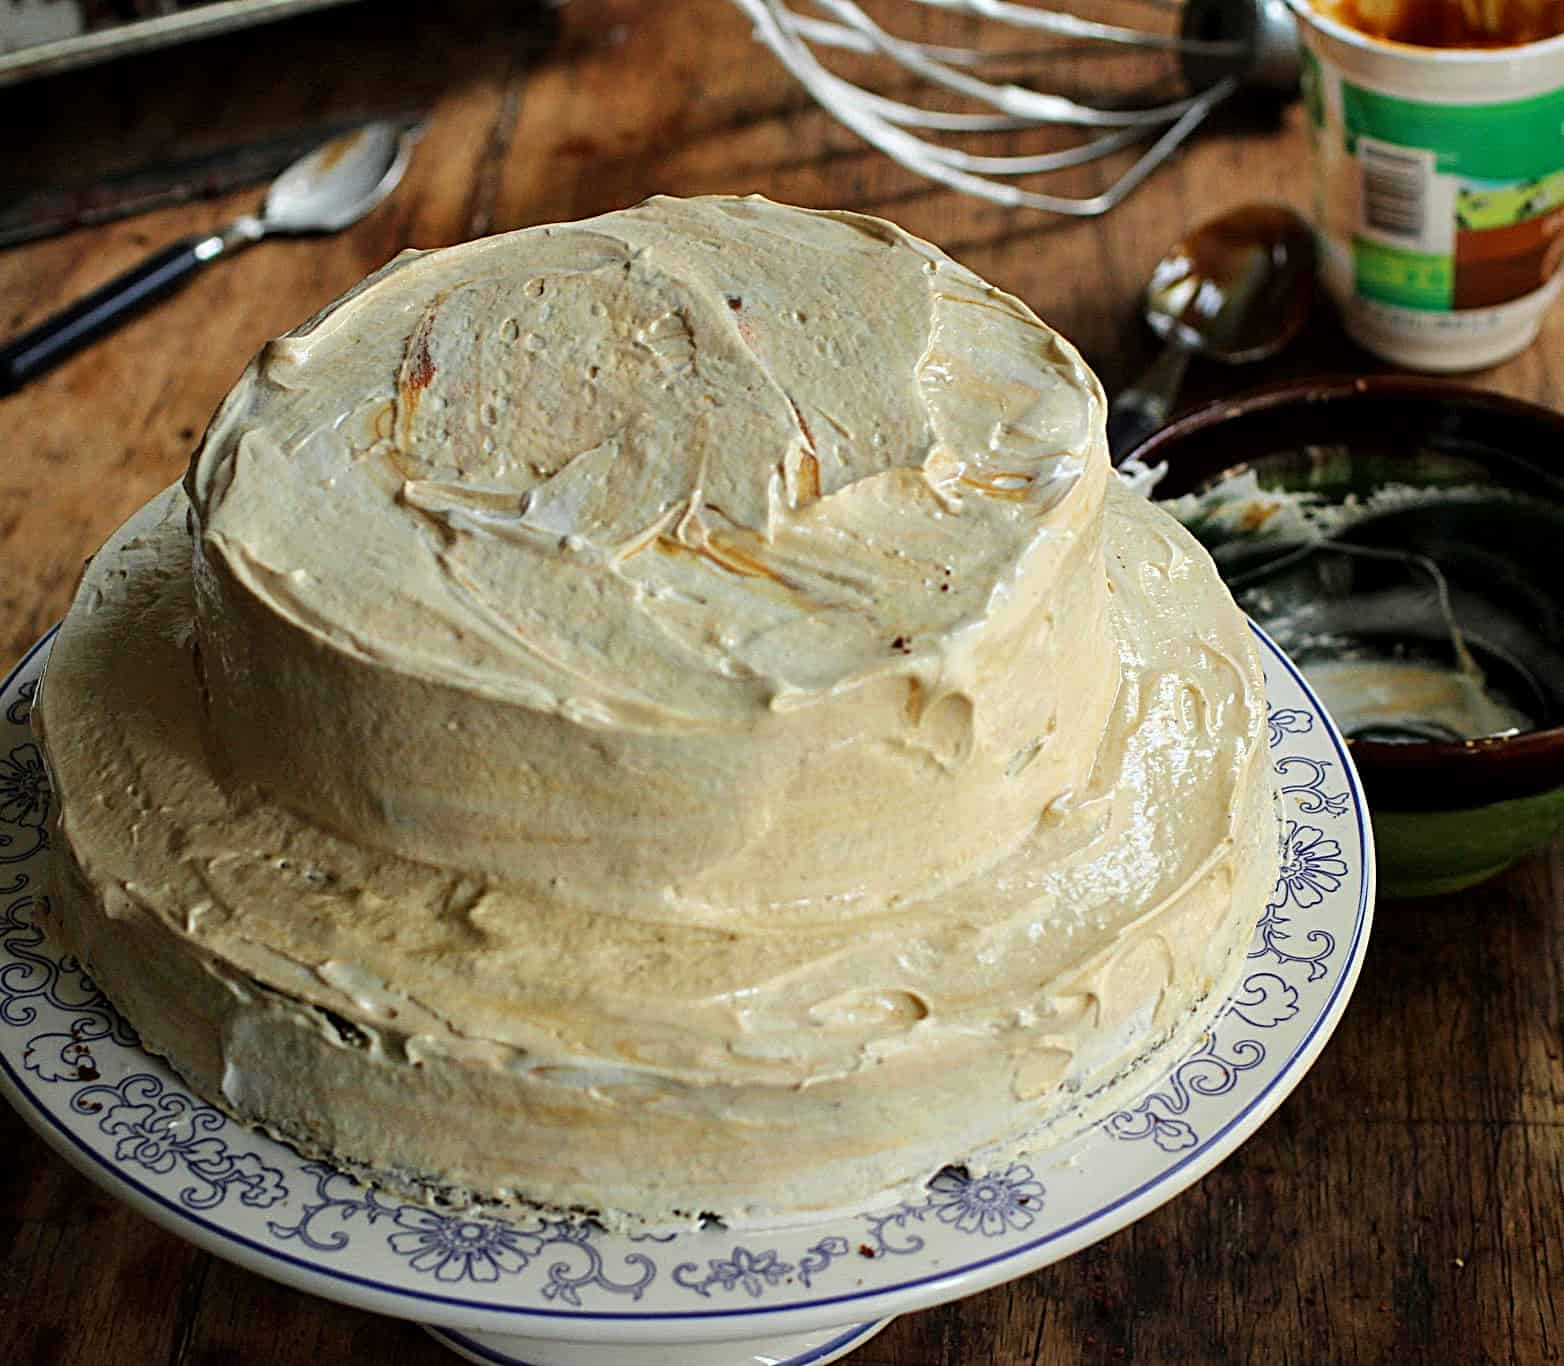 Whole meringue frosted cake on white blue cake stand, wooden table, utensils scattered around